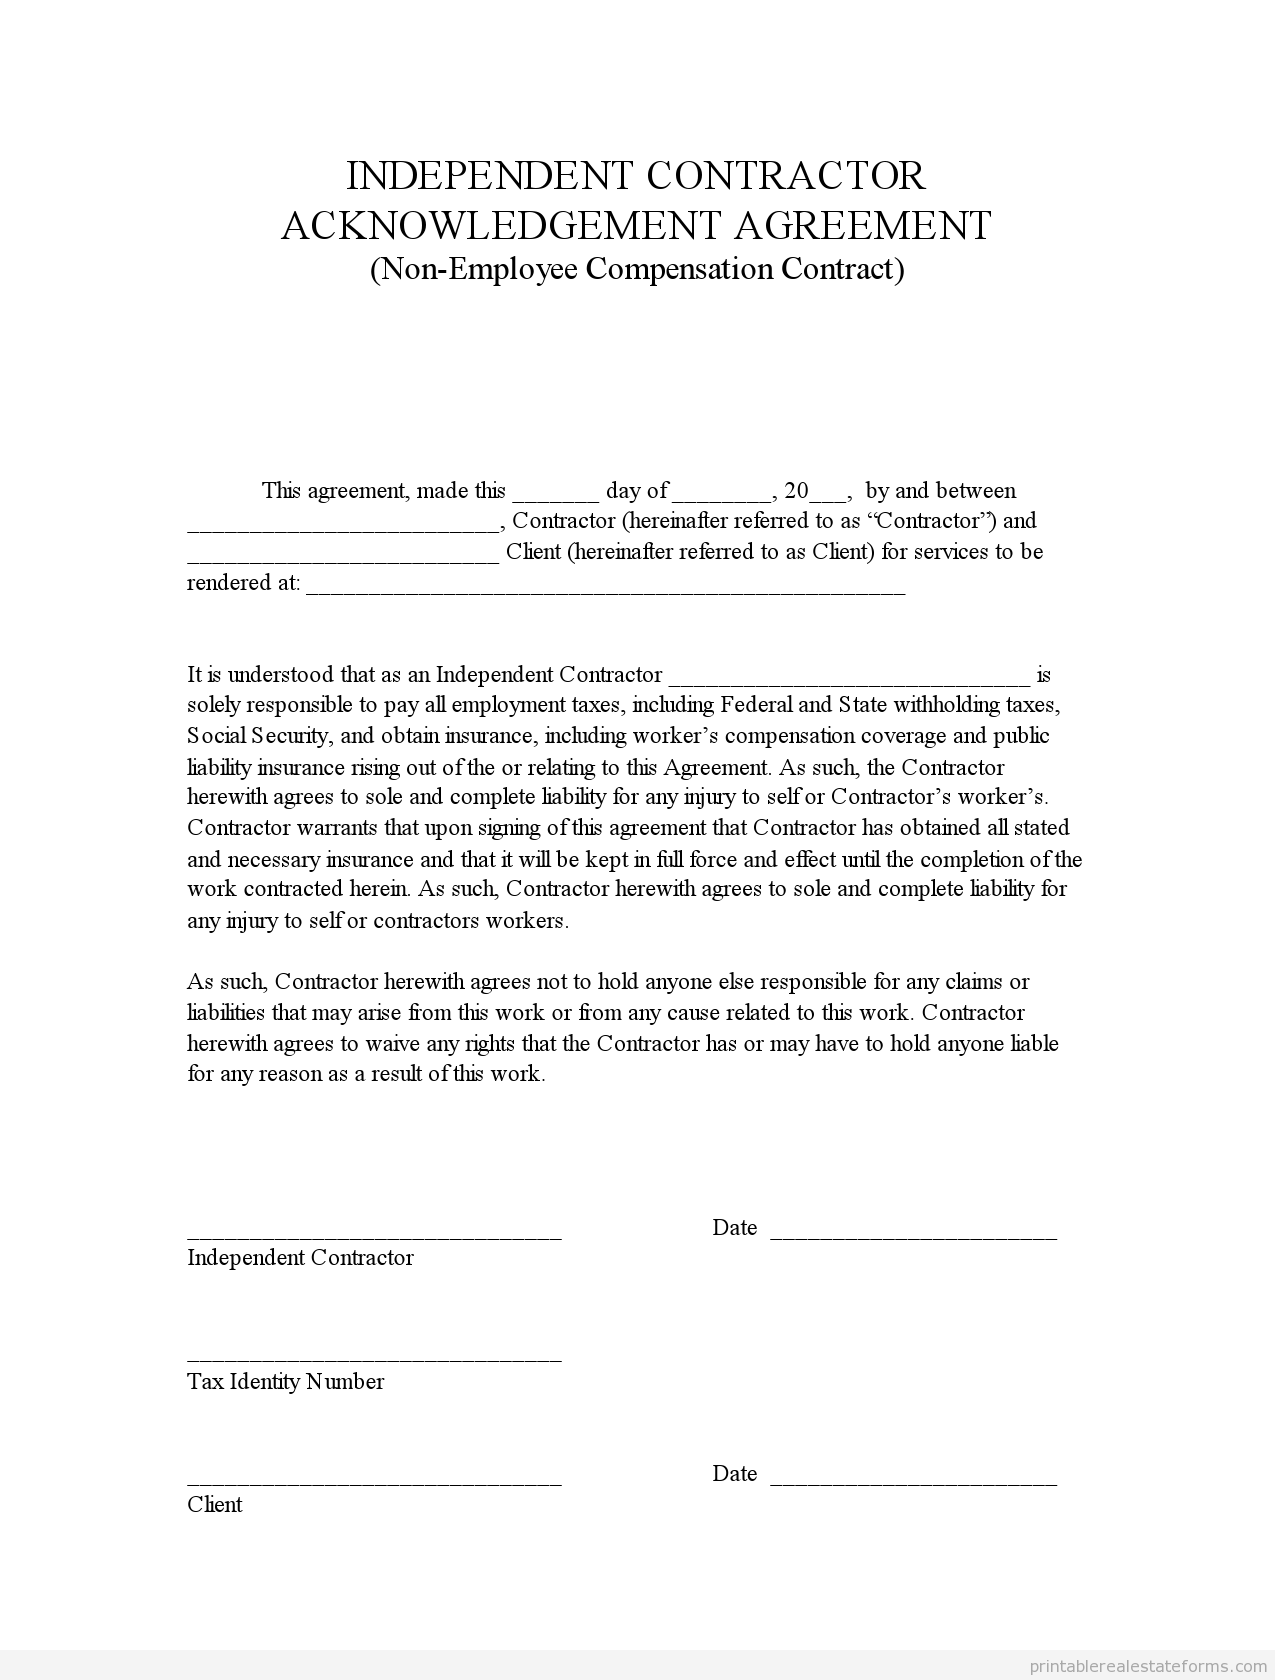 Sample Printable Indep Contractor Acknowledgement Agreement Form Real Estate Forms Real Estate Templates Legal Forms